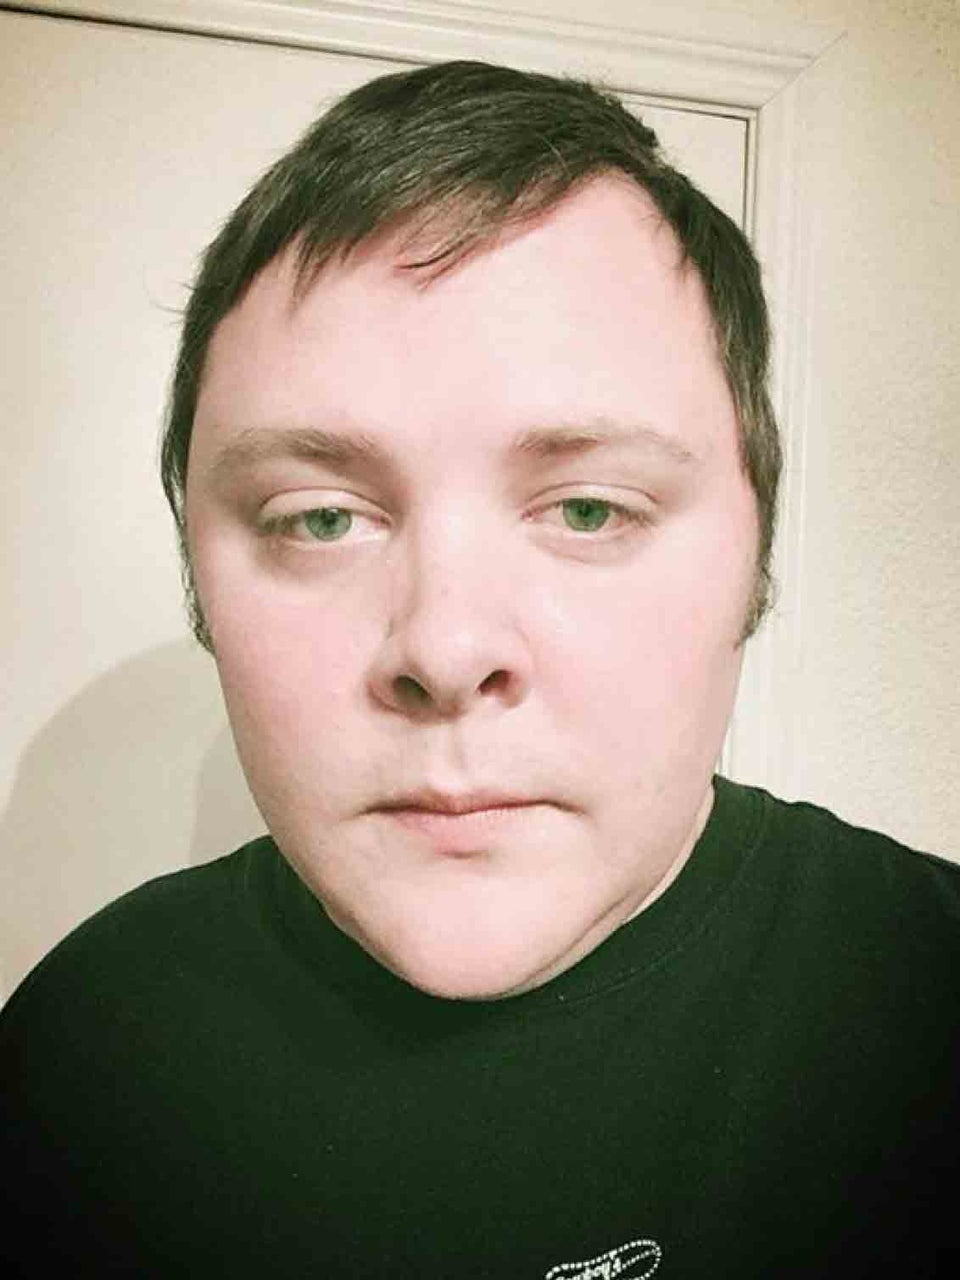 Texas Church Shooter Reportedly ID'd As Air Force Vet, 26, Once Accused Of Assaulting Spouse